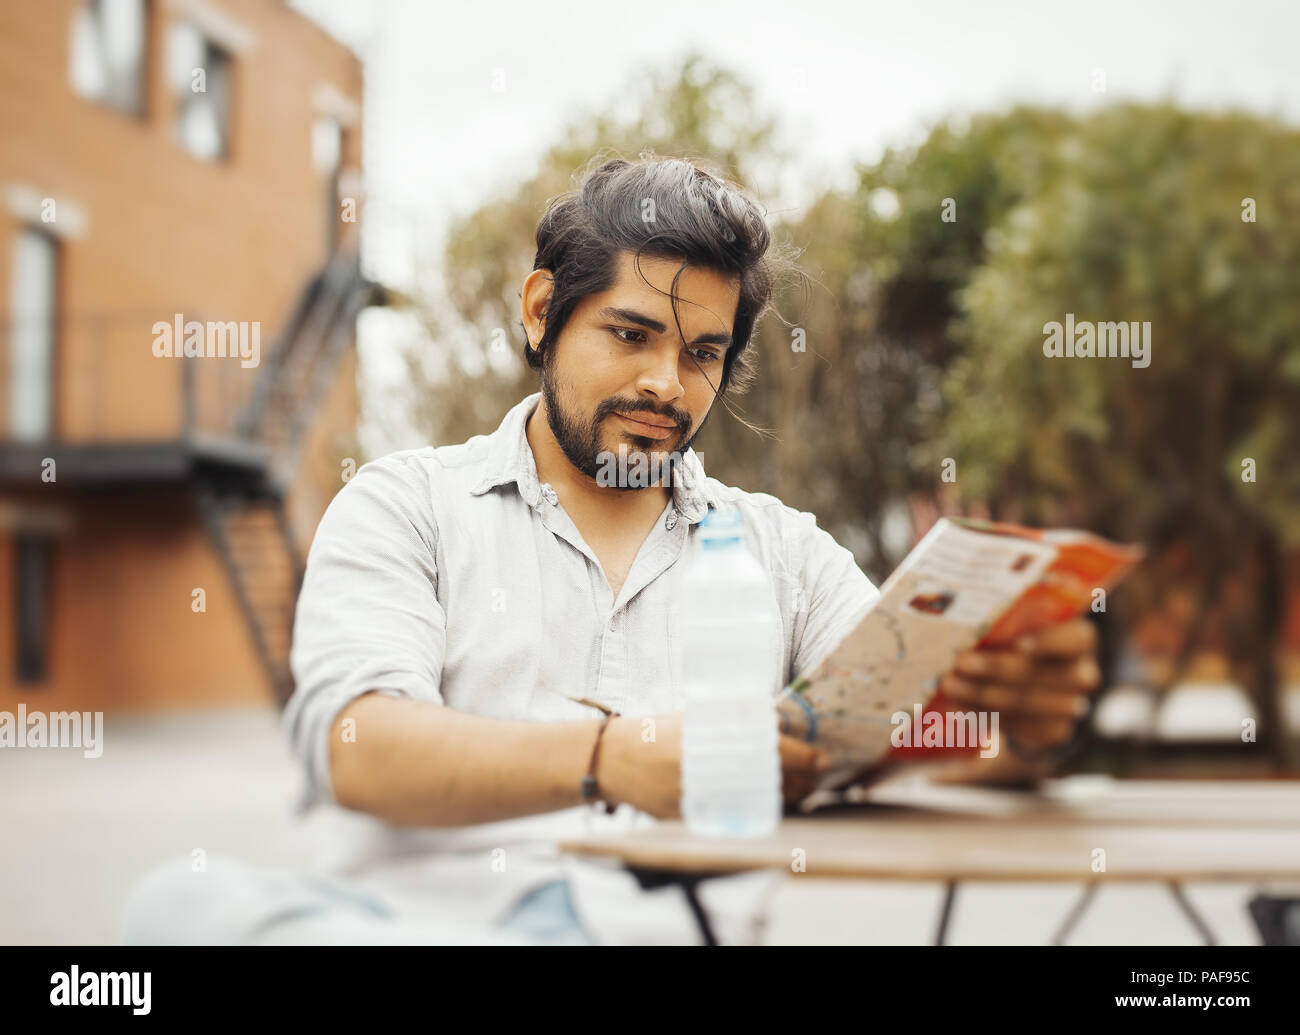 Attractive latin man sitting at street cafe and looking at the map. - Stock Image